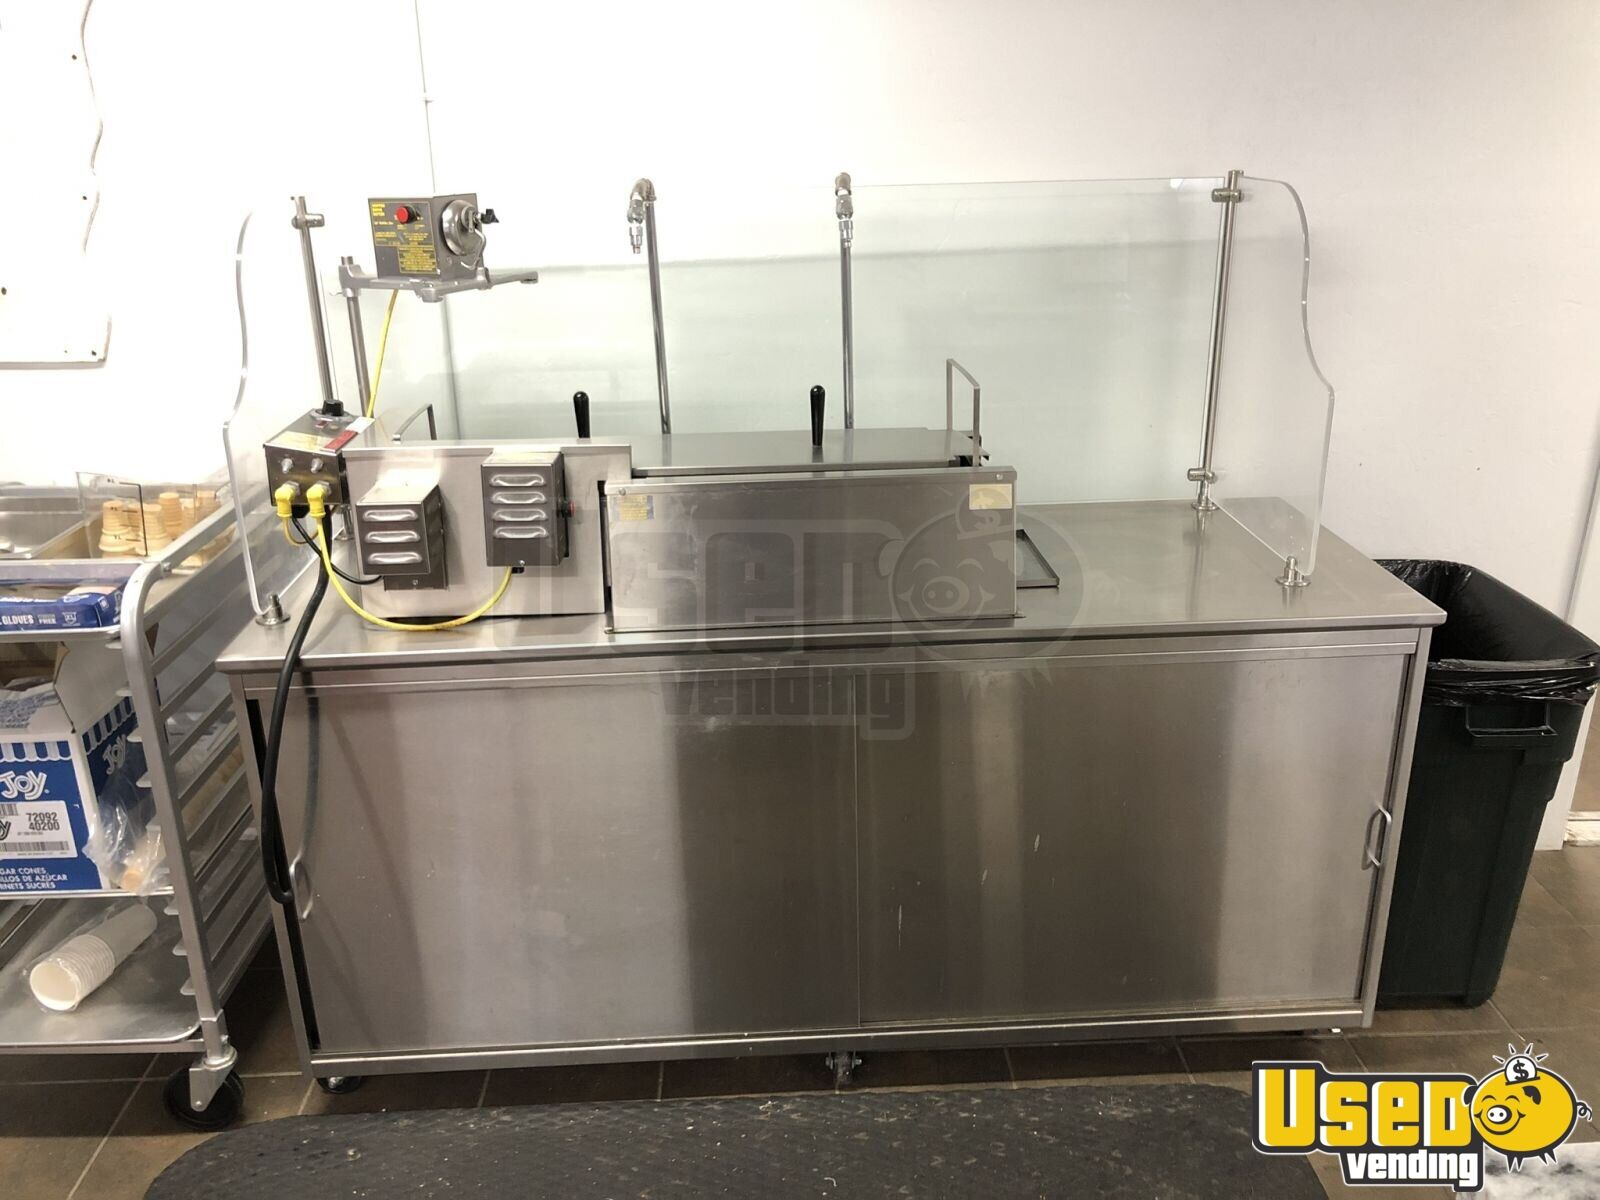 2017 Lil Orbits Ss2400 With Advanced Filtration Cabinet Cart 2 Wisconsin for Sale - 2